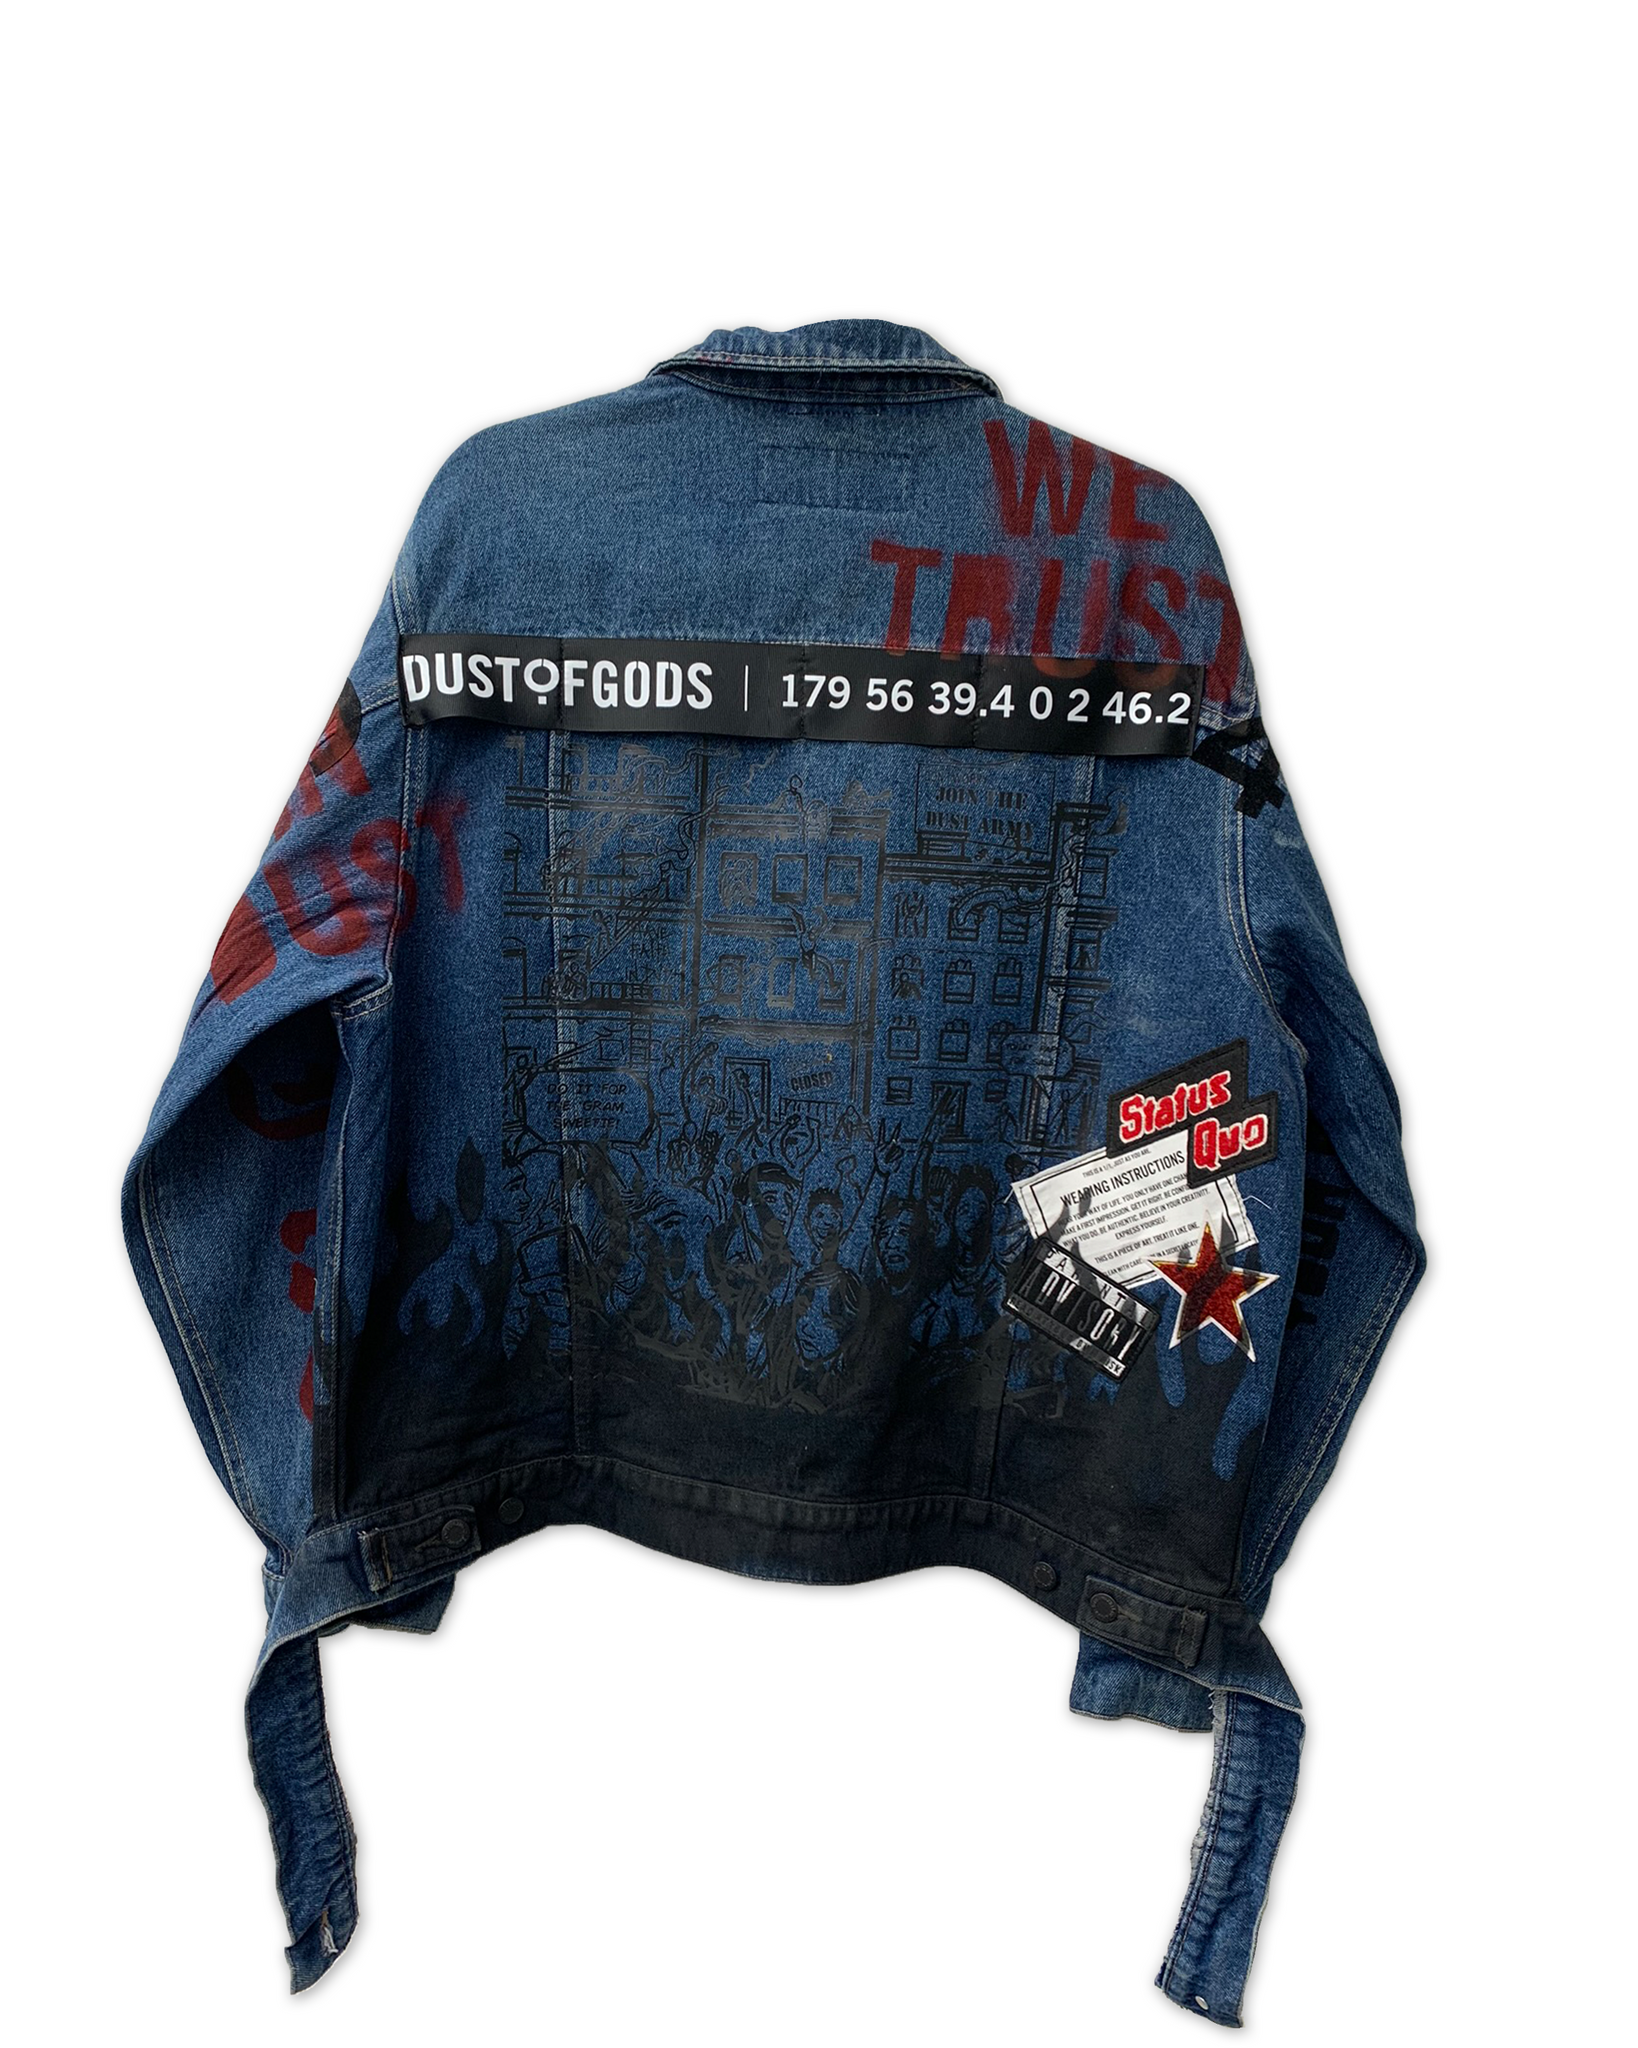 4TH EDITION SEEK WHAT SETS YOUR SOUL ON FIRE DENIM JACKET